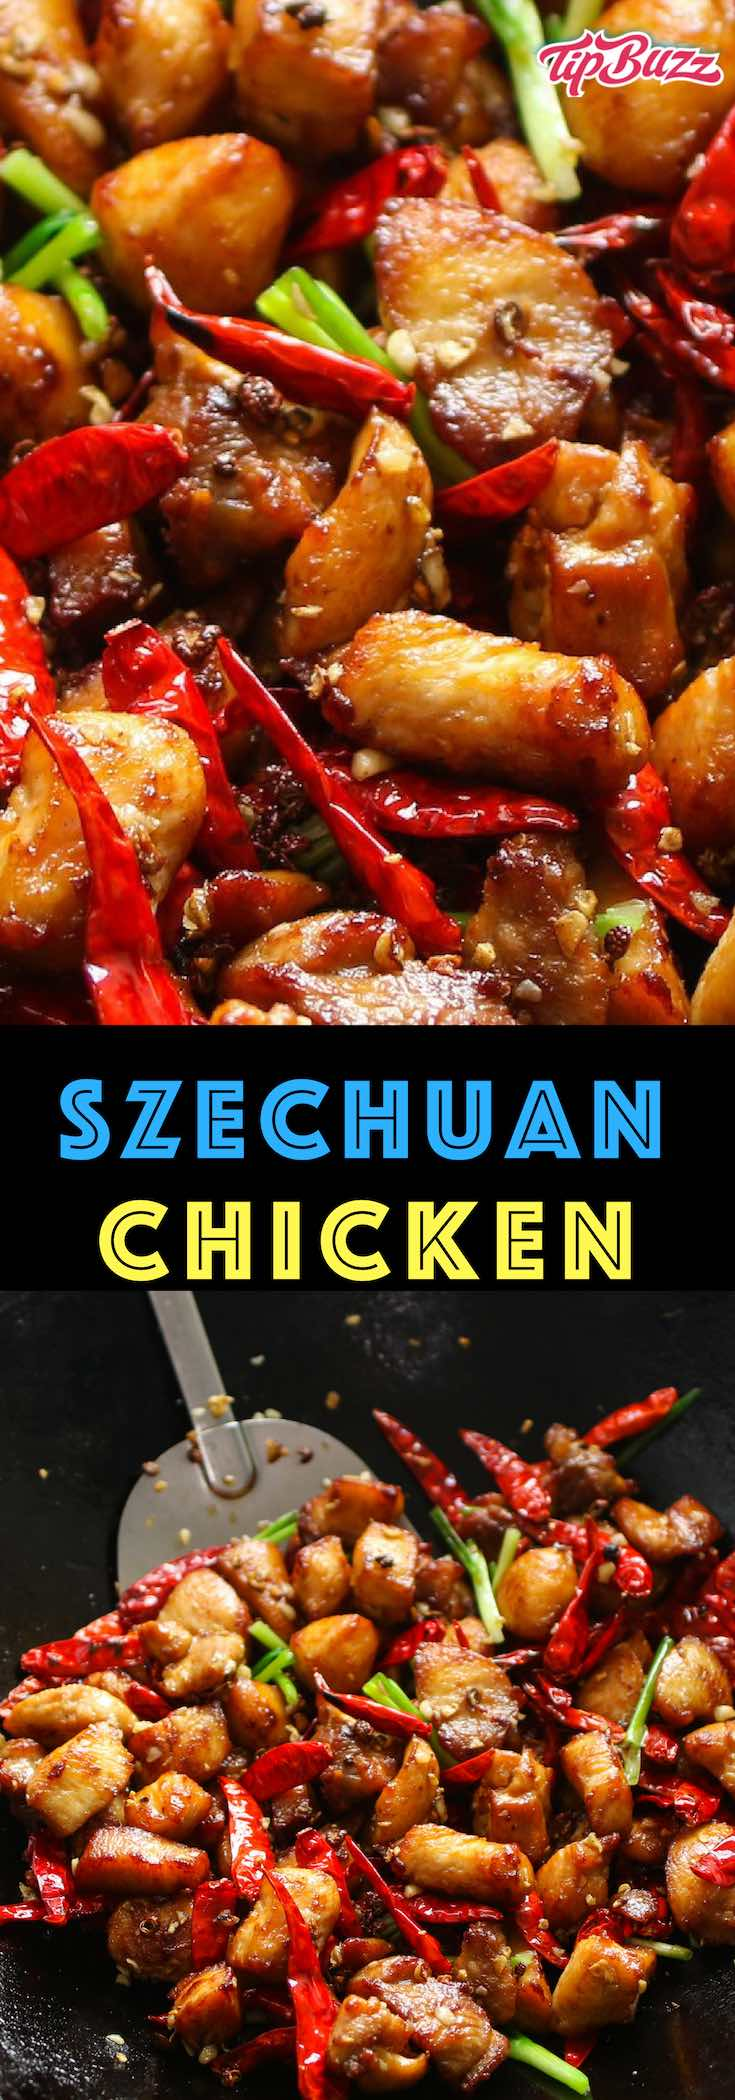 Szechuan Chicken is the classic Chinese dish featuring a fiery combination of garlic, ginger, dried chilis and Szechuan seasonings. It's ready in just 20 minutes for a dinner that will tantalize your taste buds, so much better than takeout!